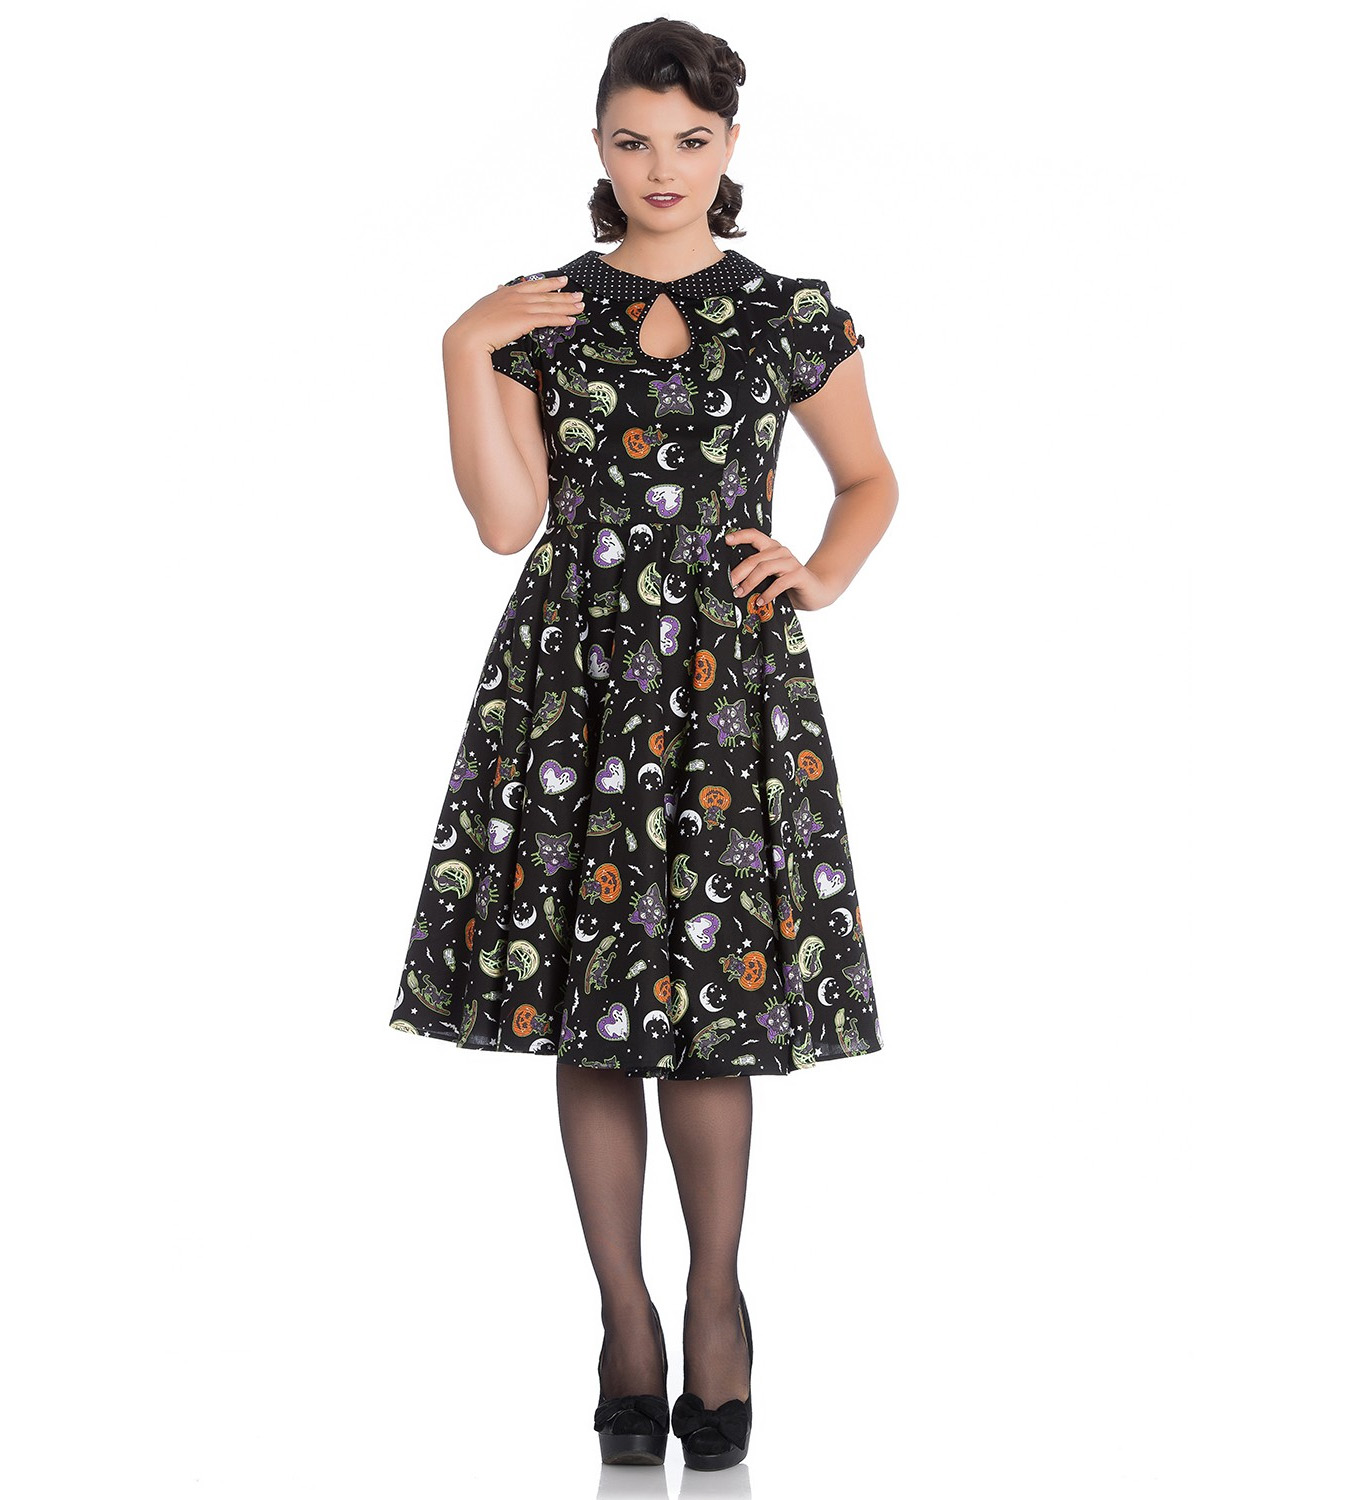 Hell-Bunny-50s-Black-Pin-Up-Dress-Horror-Witchy-SALEM-Halloween-All-Sizes thumbnail 33